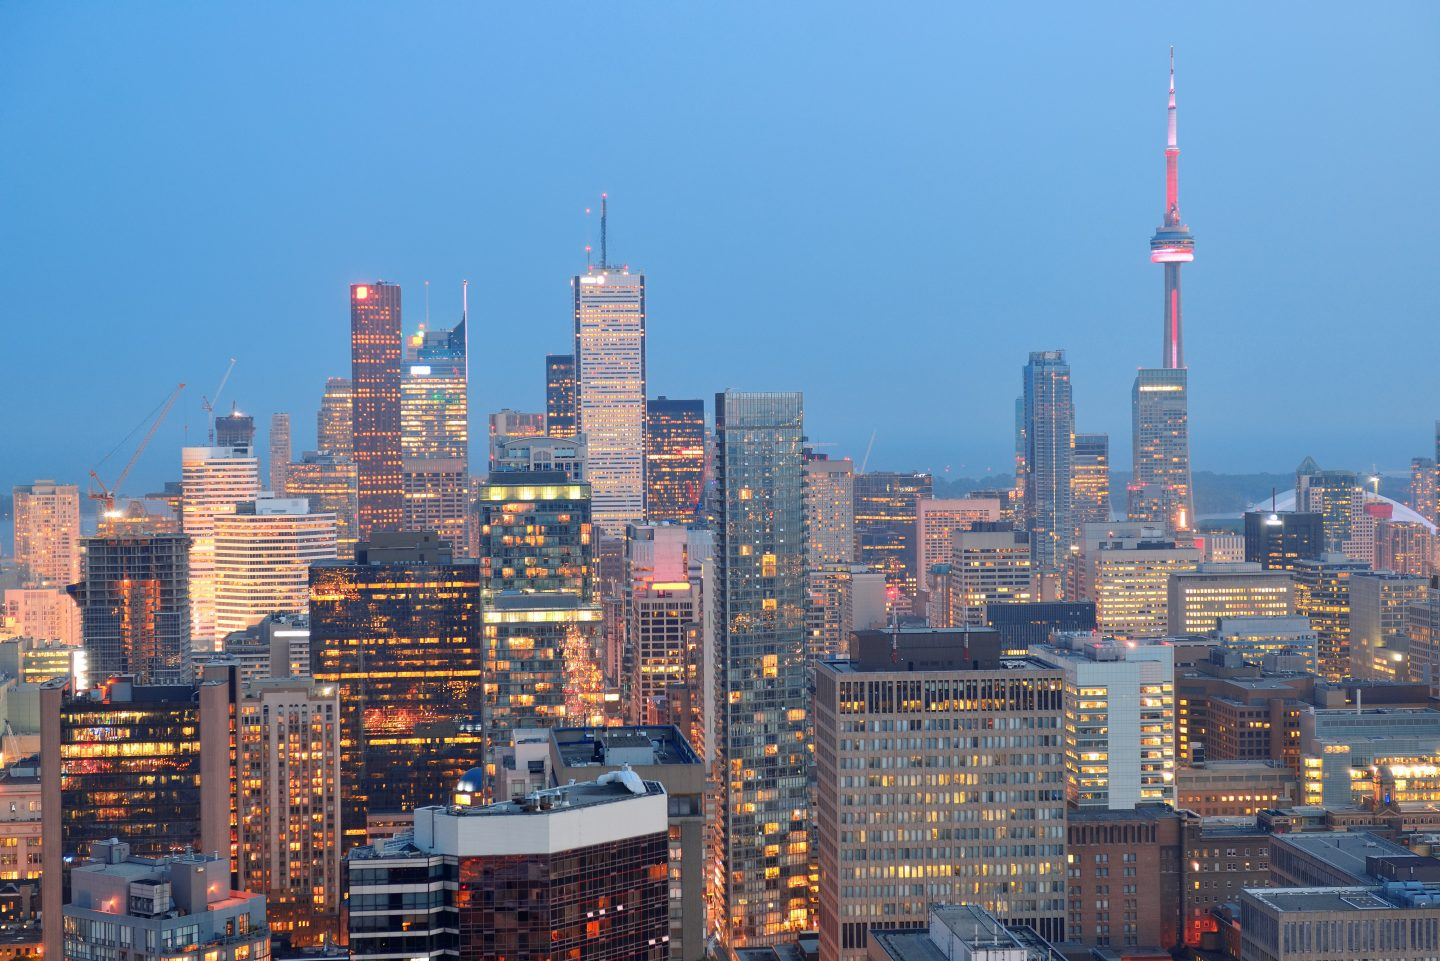 Toronto at dusk with city light and urban skyline with skyscrapers